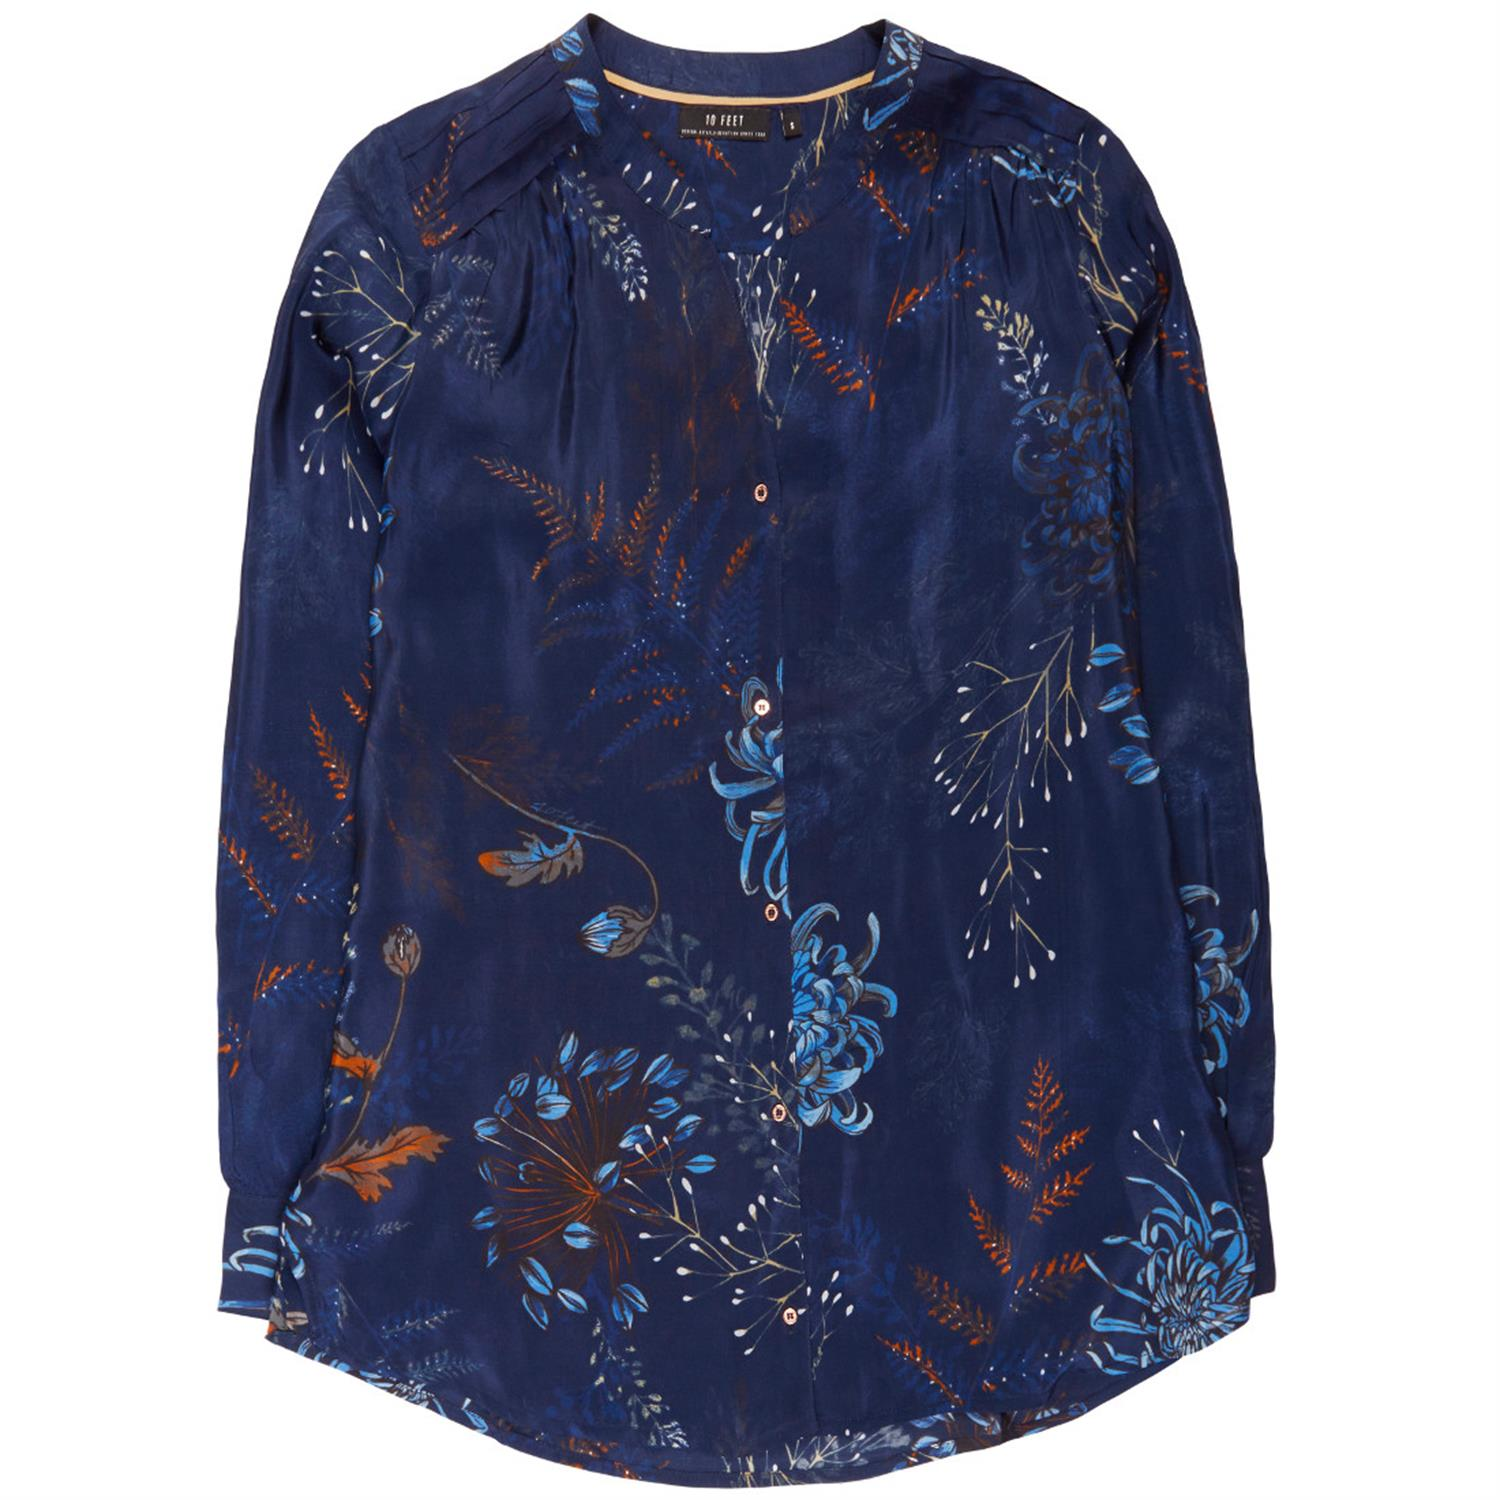 Fig. 10. Blouse